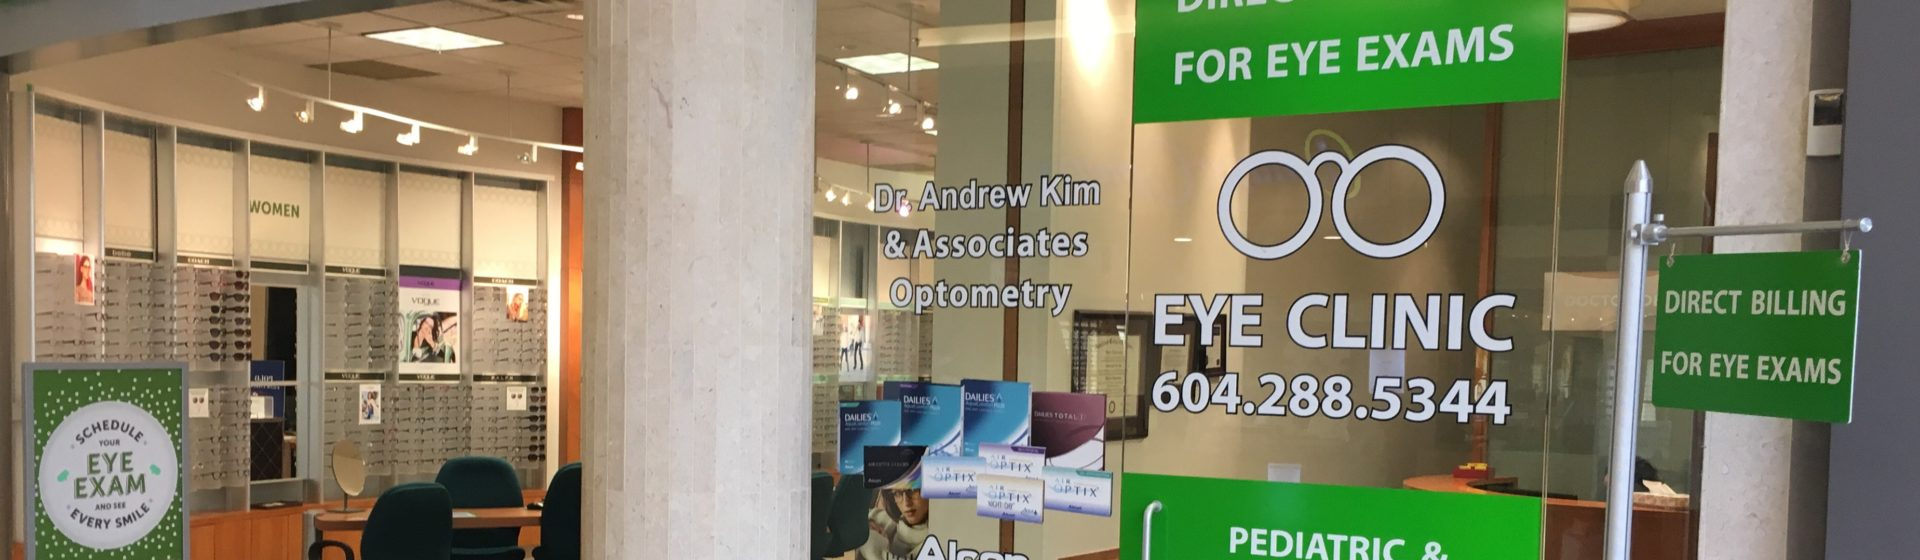 Dr. Andrew Kim & Associates Optometry